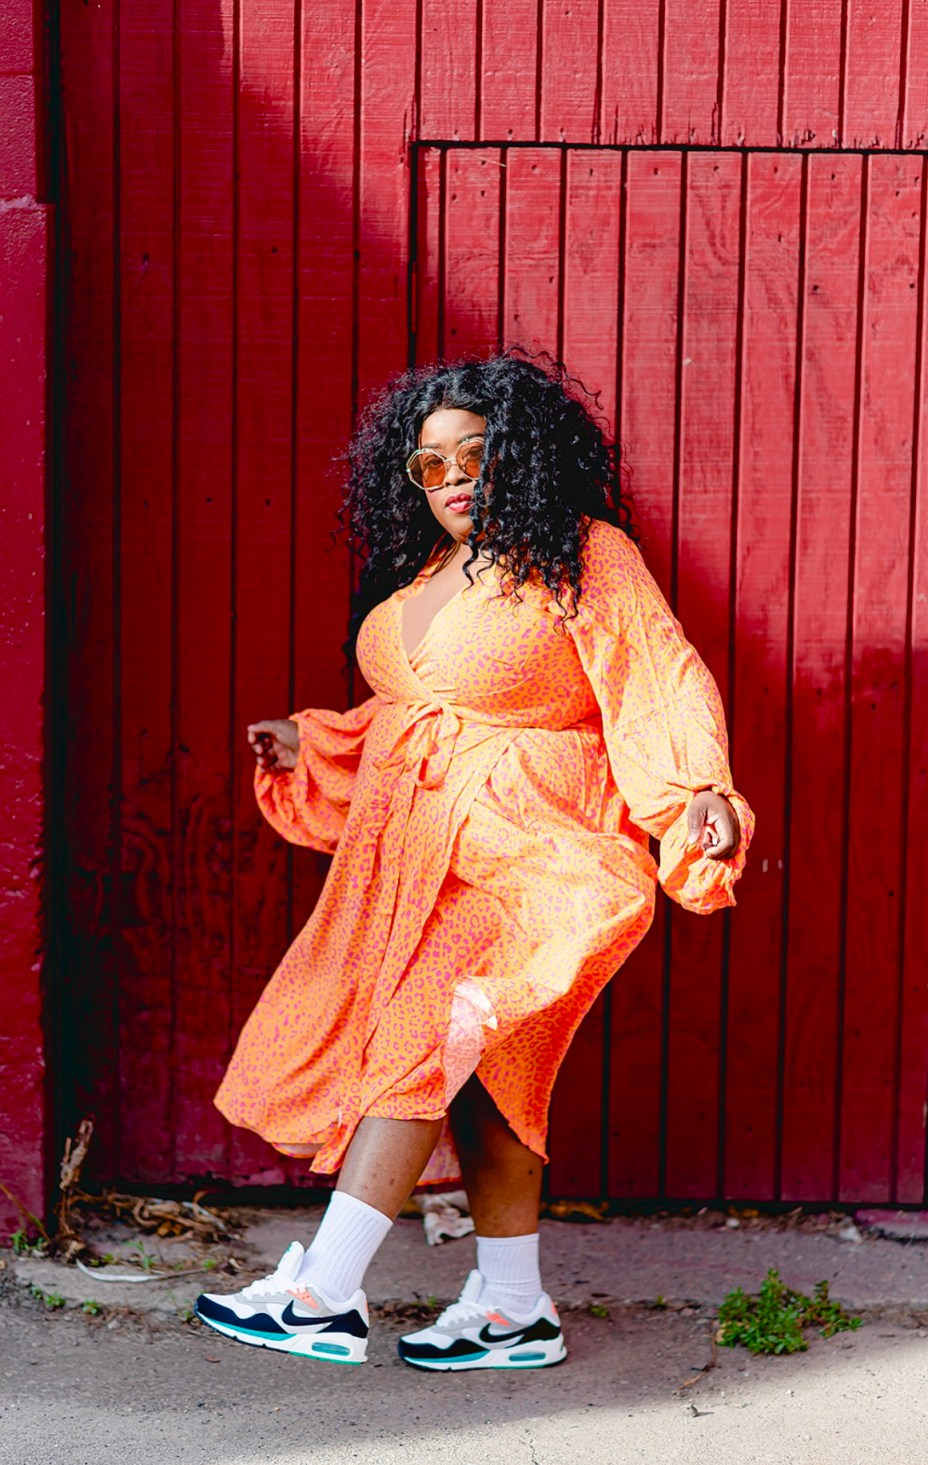 Eloquii dress, nike sneakers, Plus-Size Streetwear, How To Plus-Size Streetwear: Dresses, Skirts, and Sneakers, thefatgirloffashion